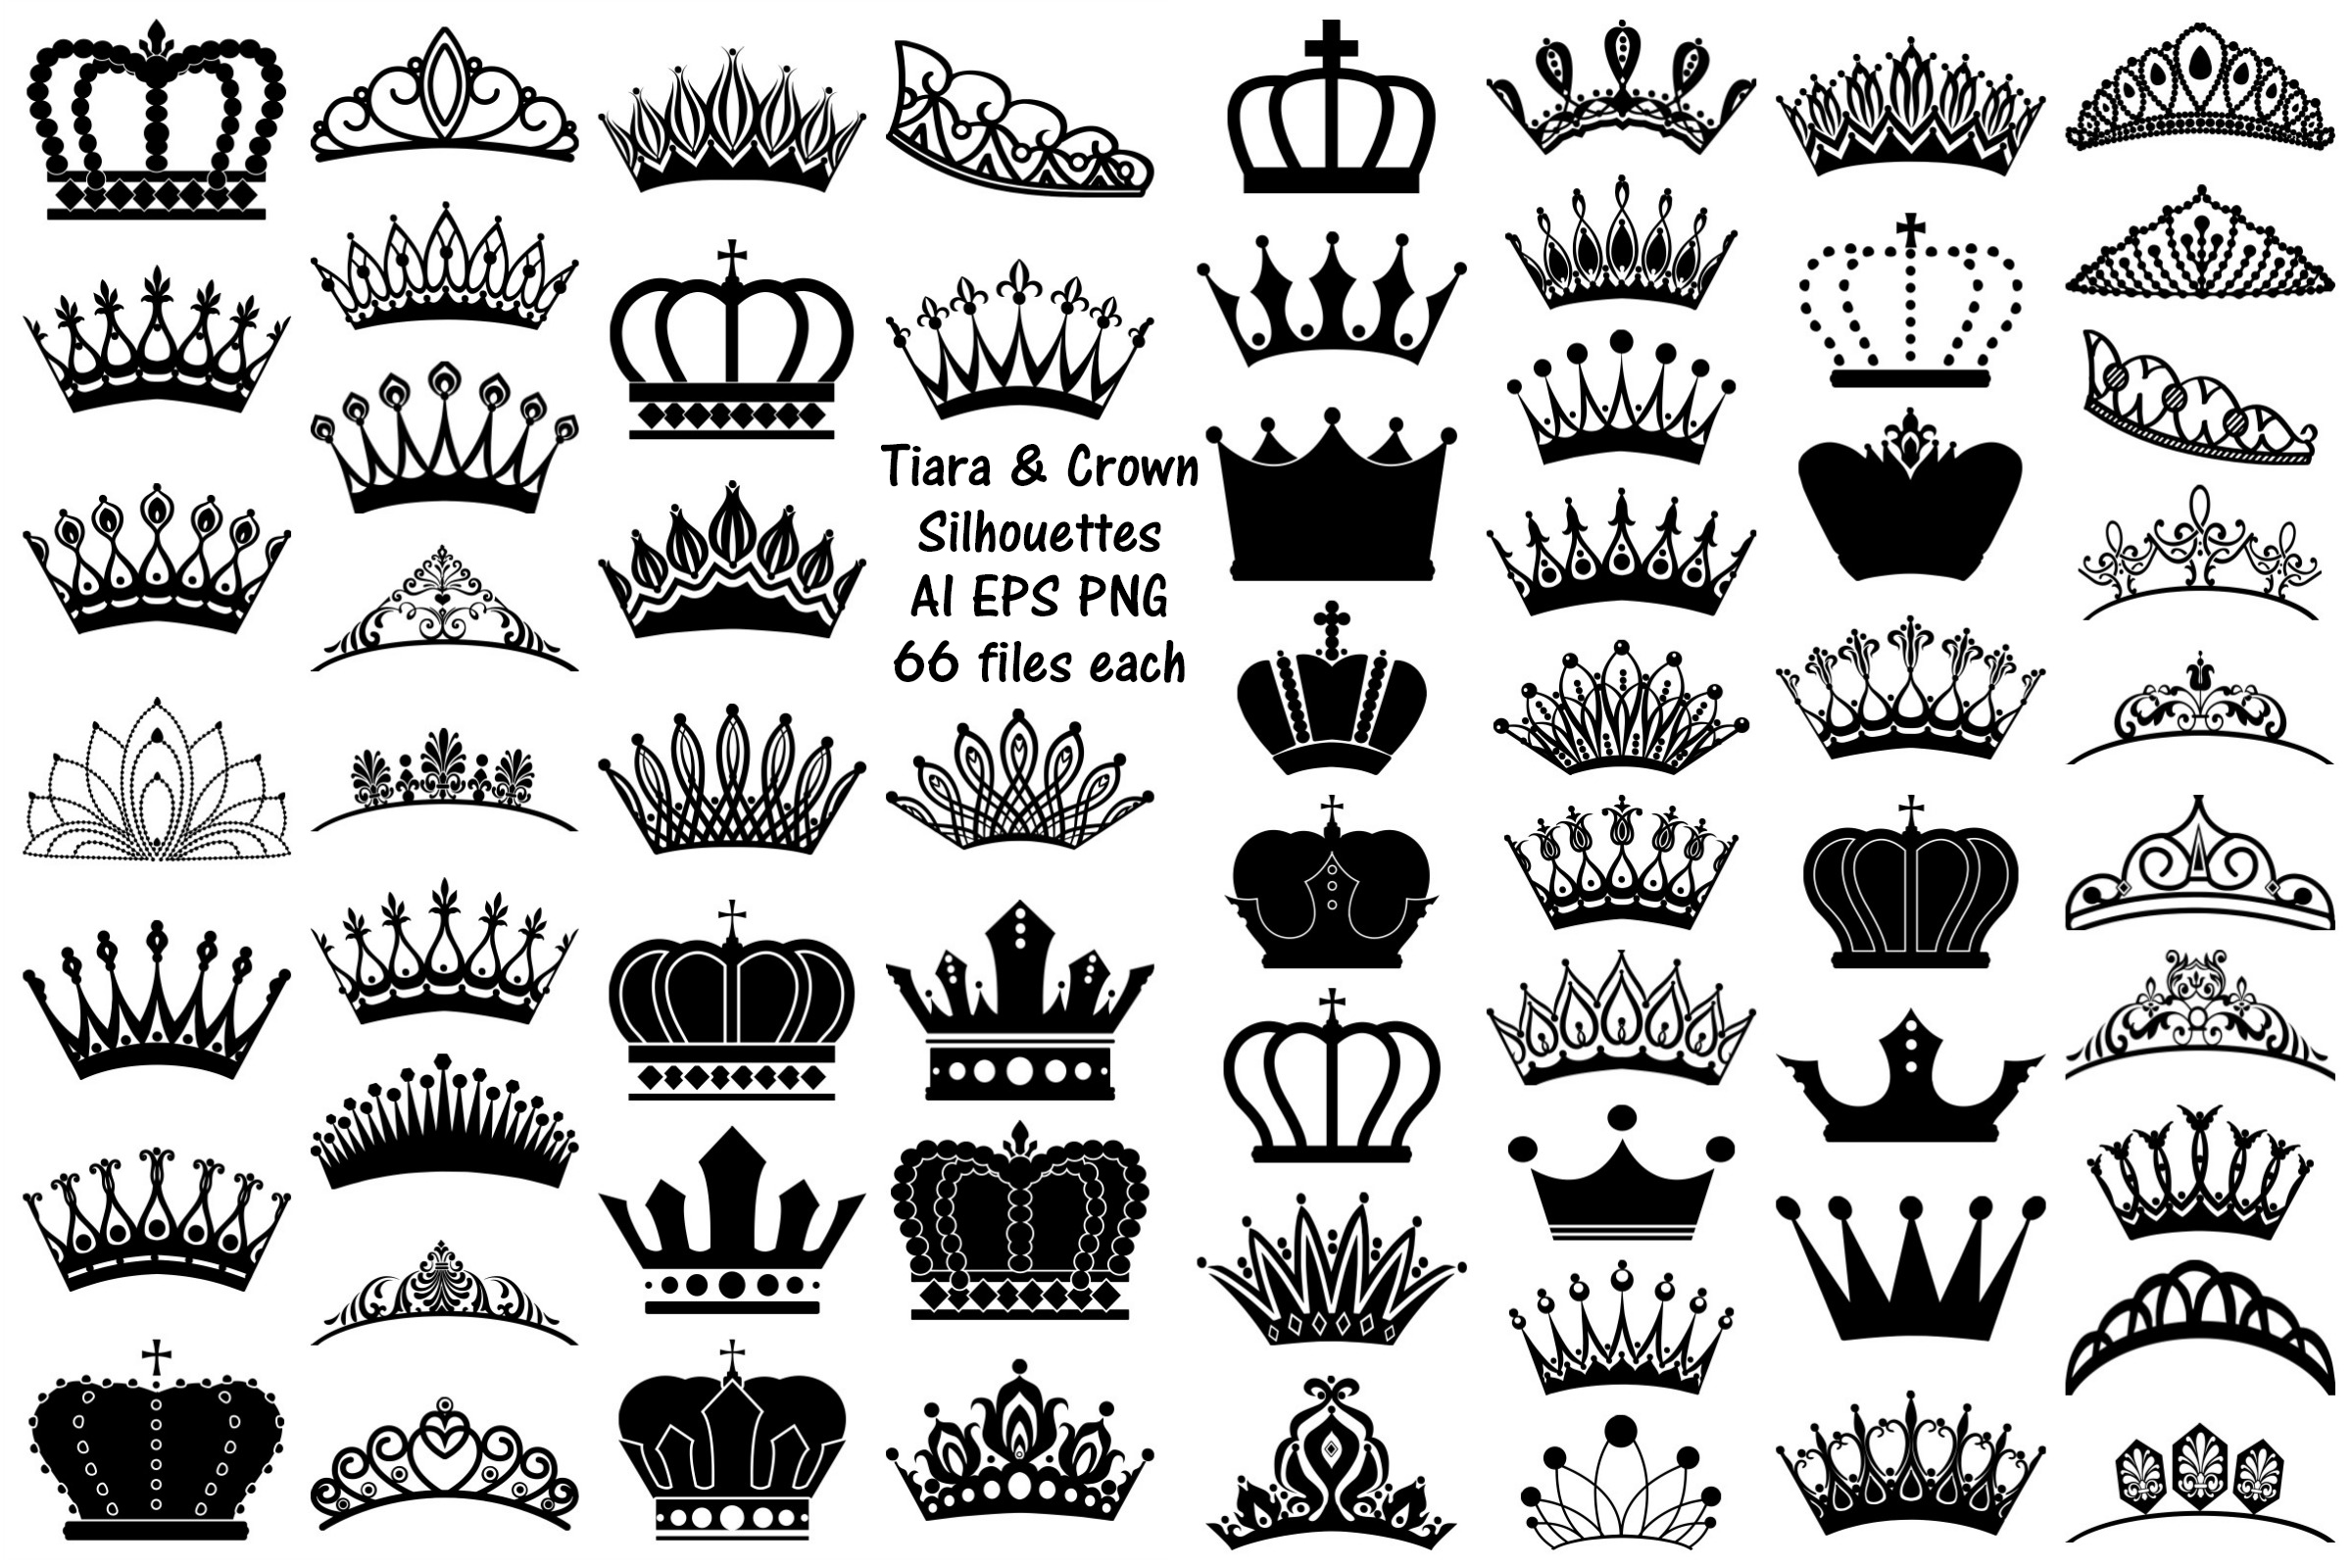 Tiara and Crown Silhouettes AI EPS PNG example image 1